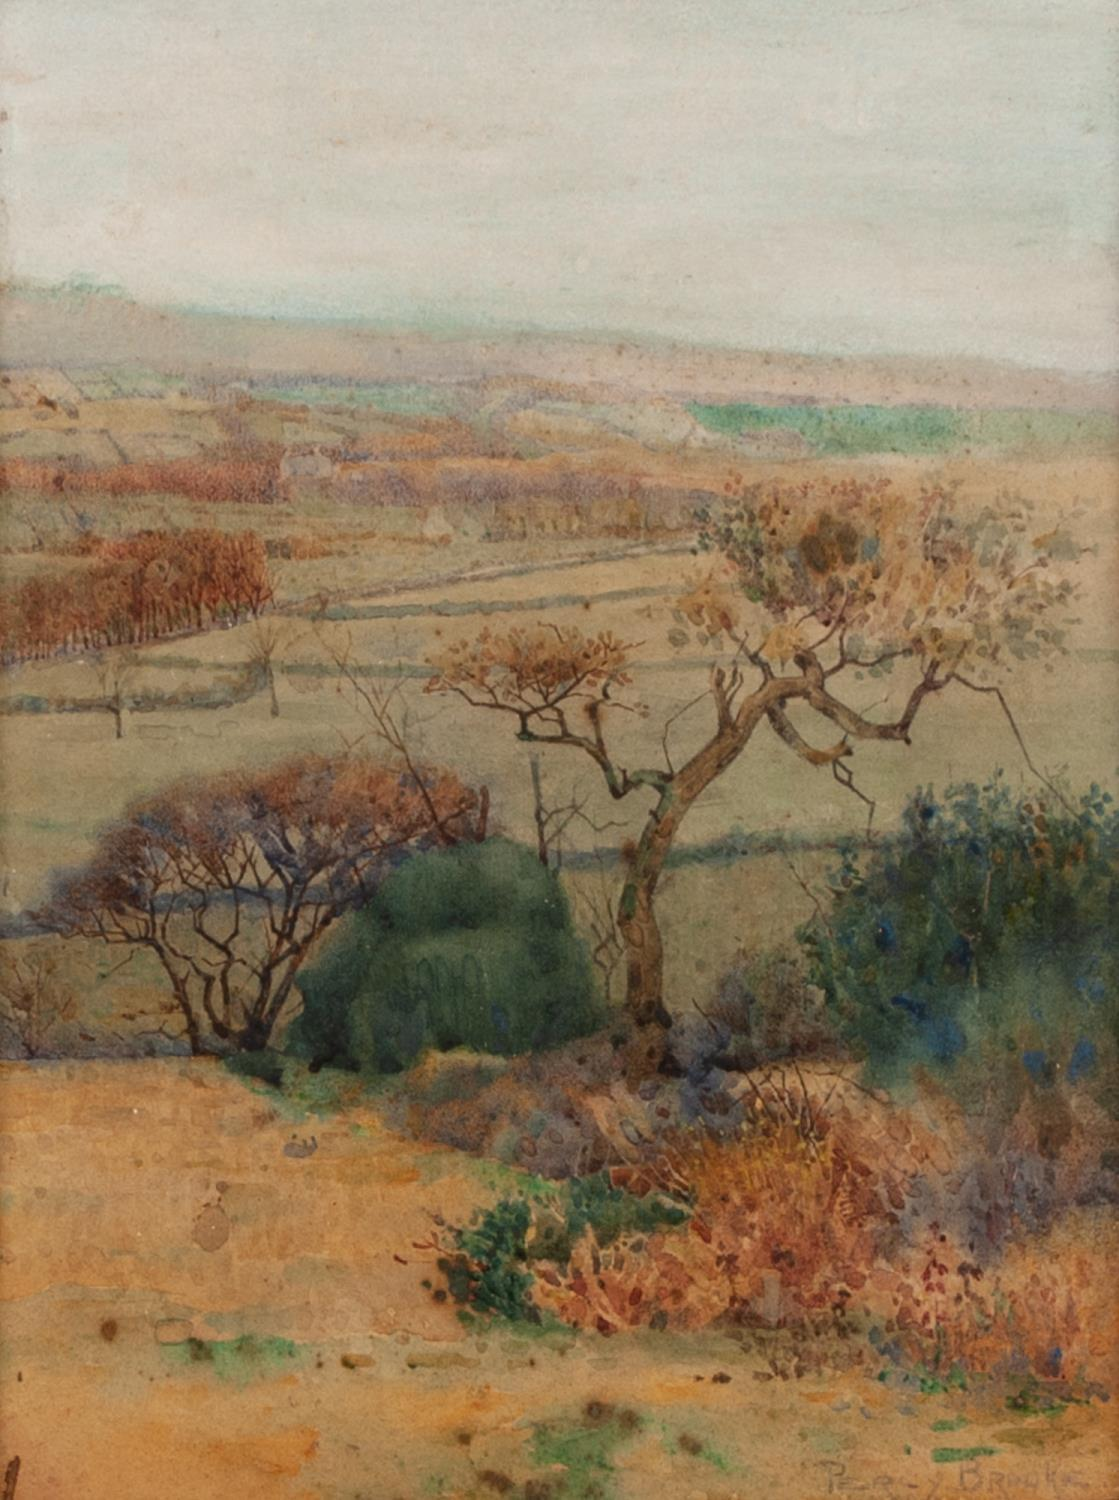 Lot 181 - PERCY BROOKE (NINETEENTH/ TWENTIETH CENTURY) WATERCOLOUR DRAWING ?On Mellor Moors? Signed, titled to